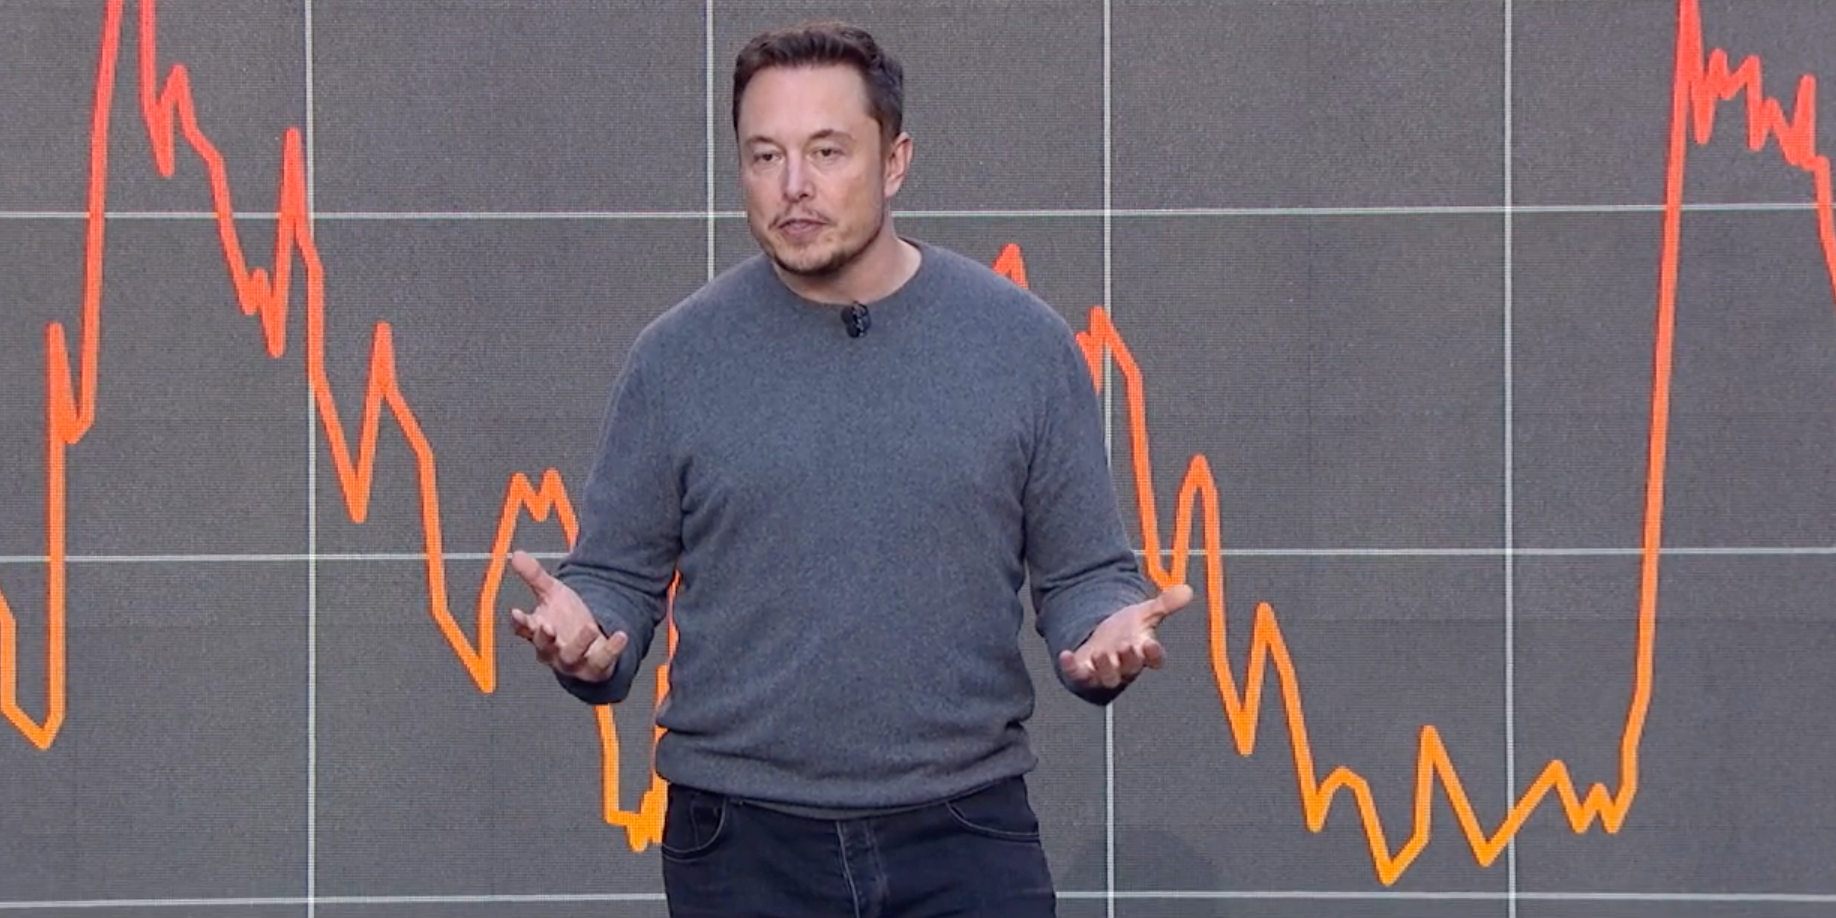 Elon Musk says hackers could use advanced AI to take down the internet.